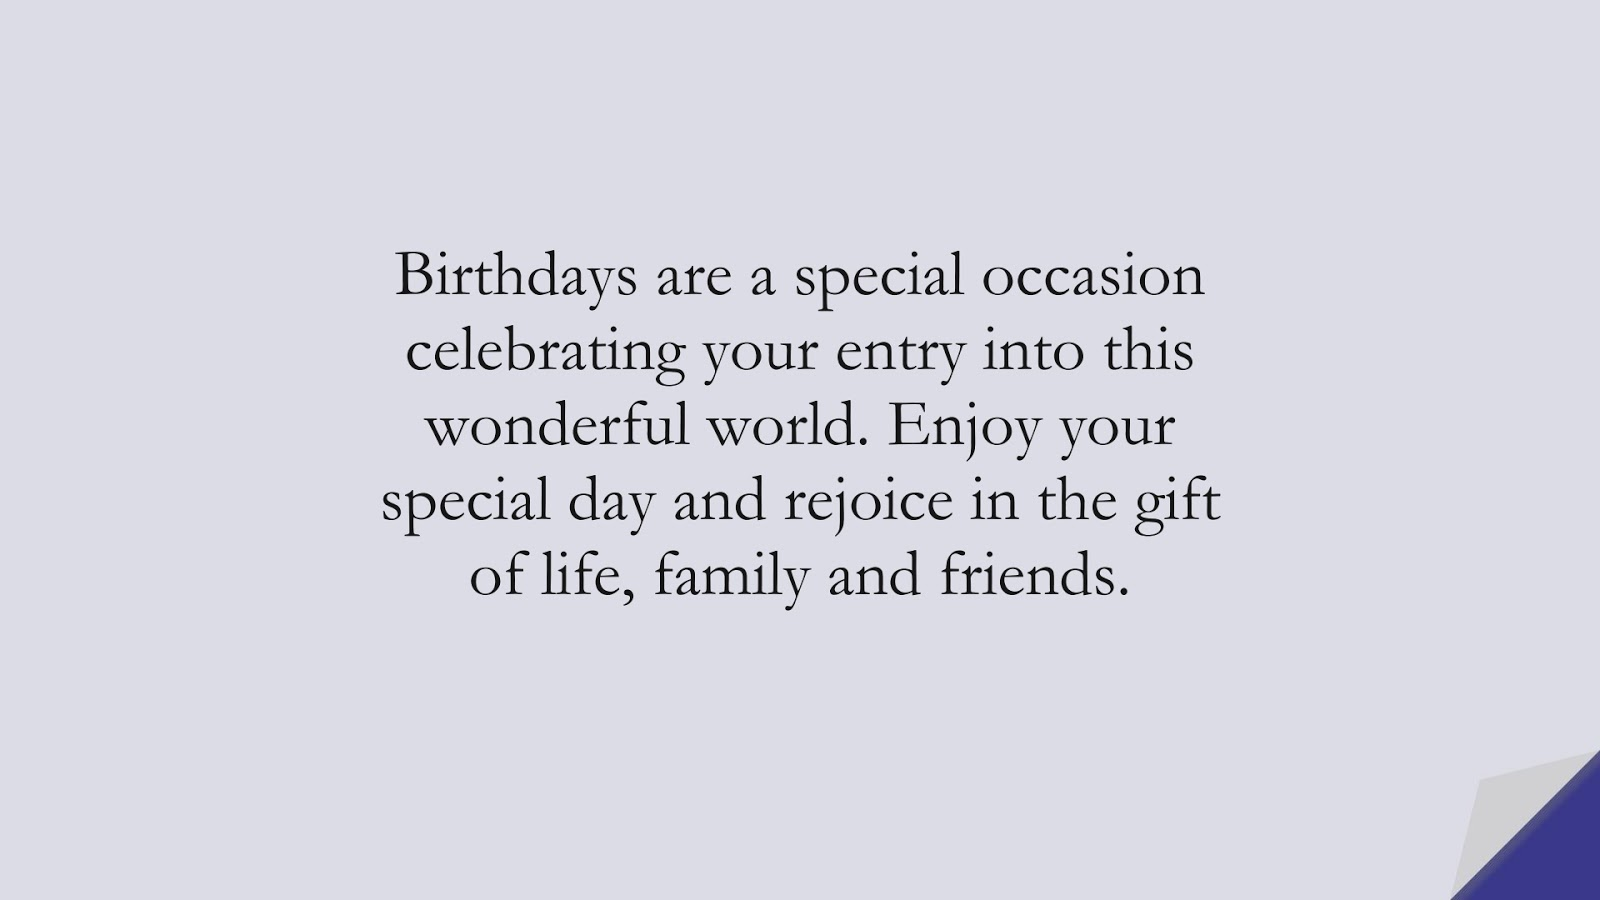 Birthdays are a special occasion celebrating your entry into this wonderful world. Enjoy your special day and rejoice in the gift of life, family and friends.FALSE